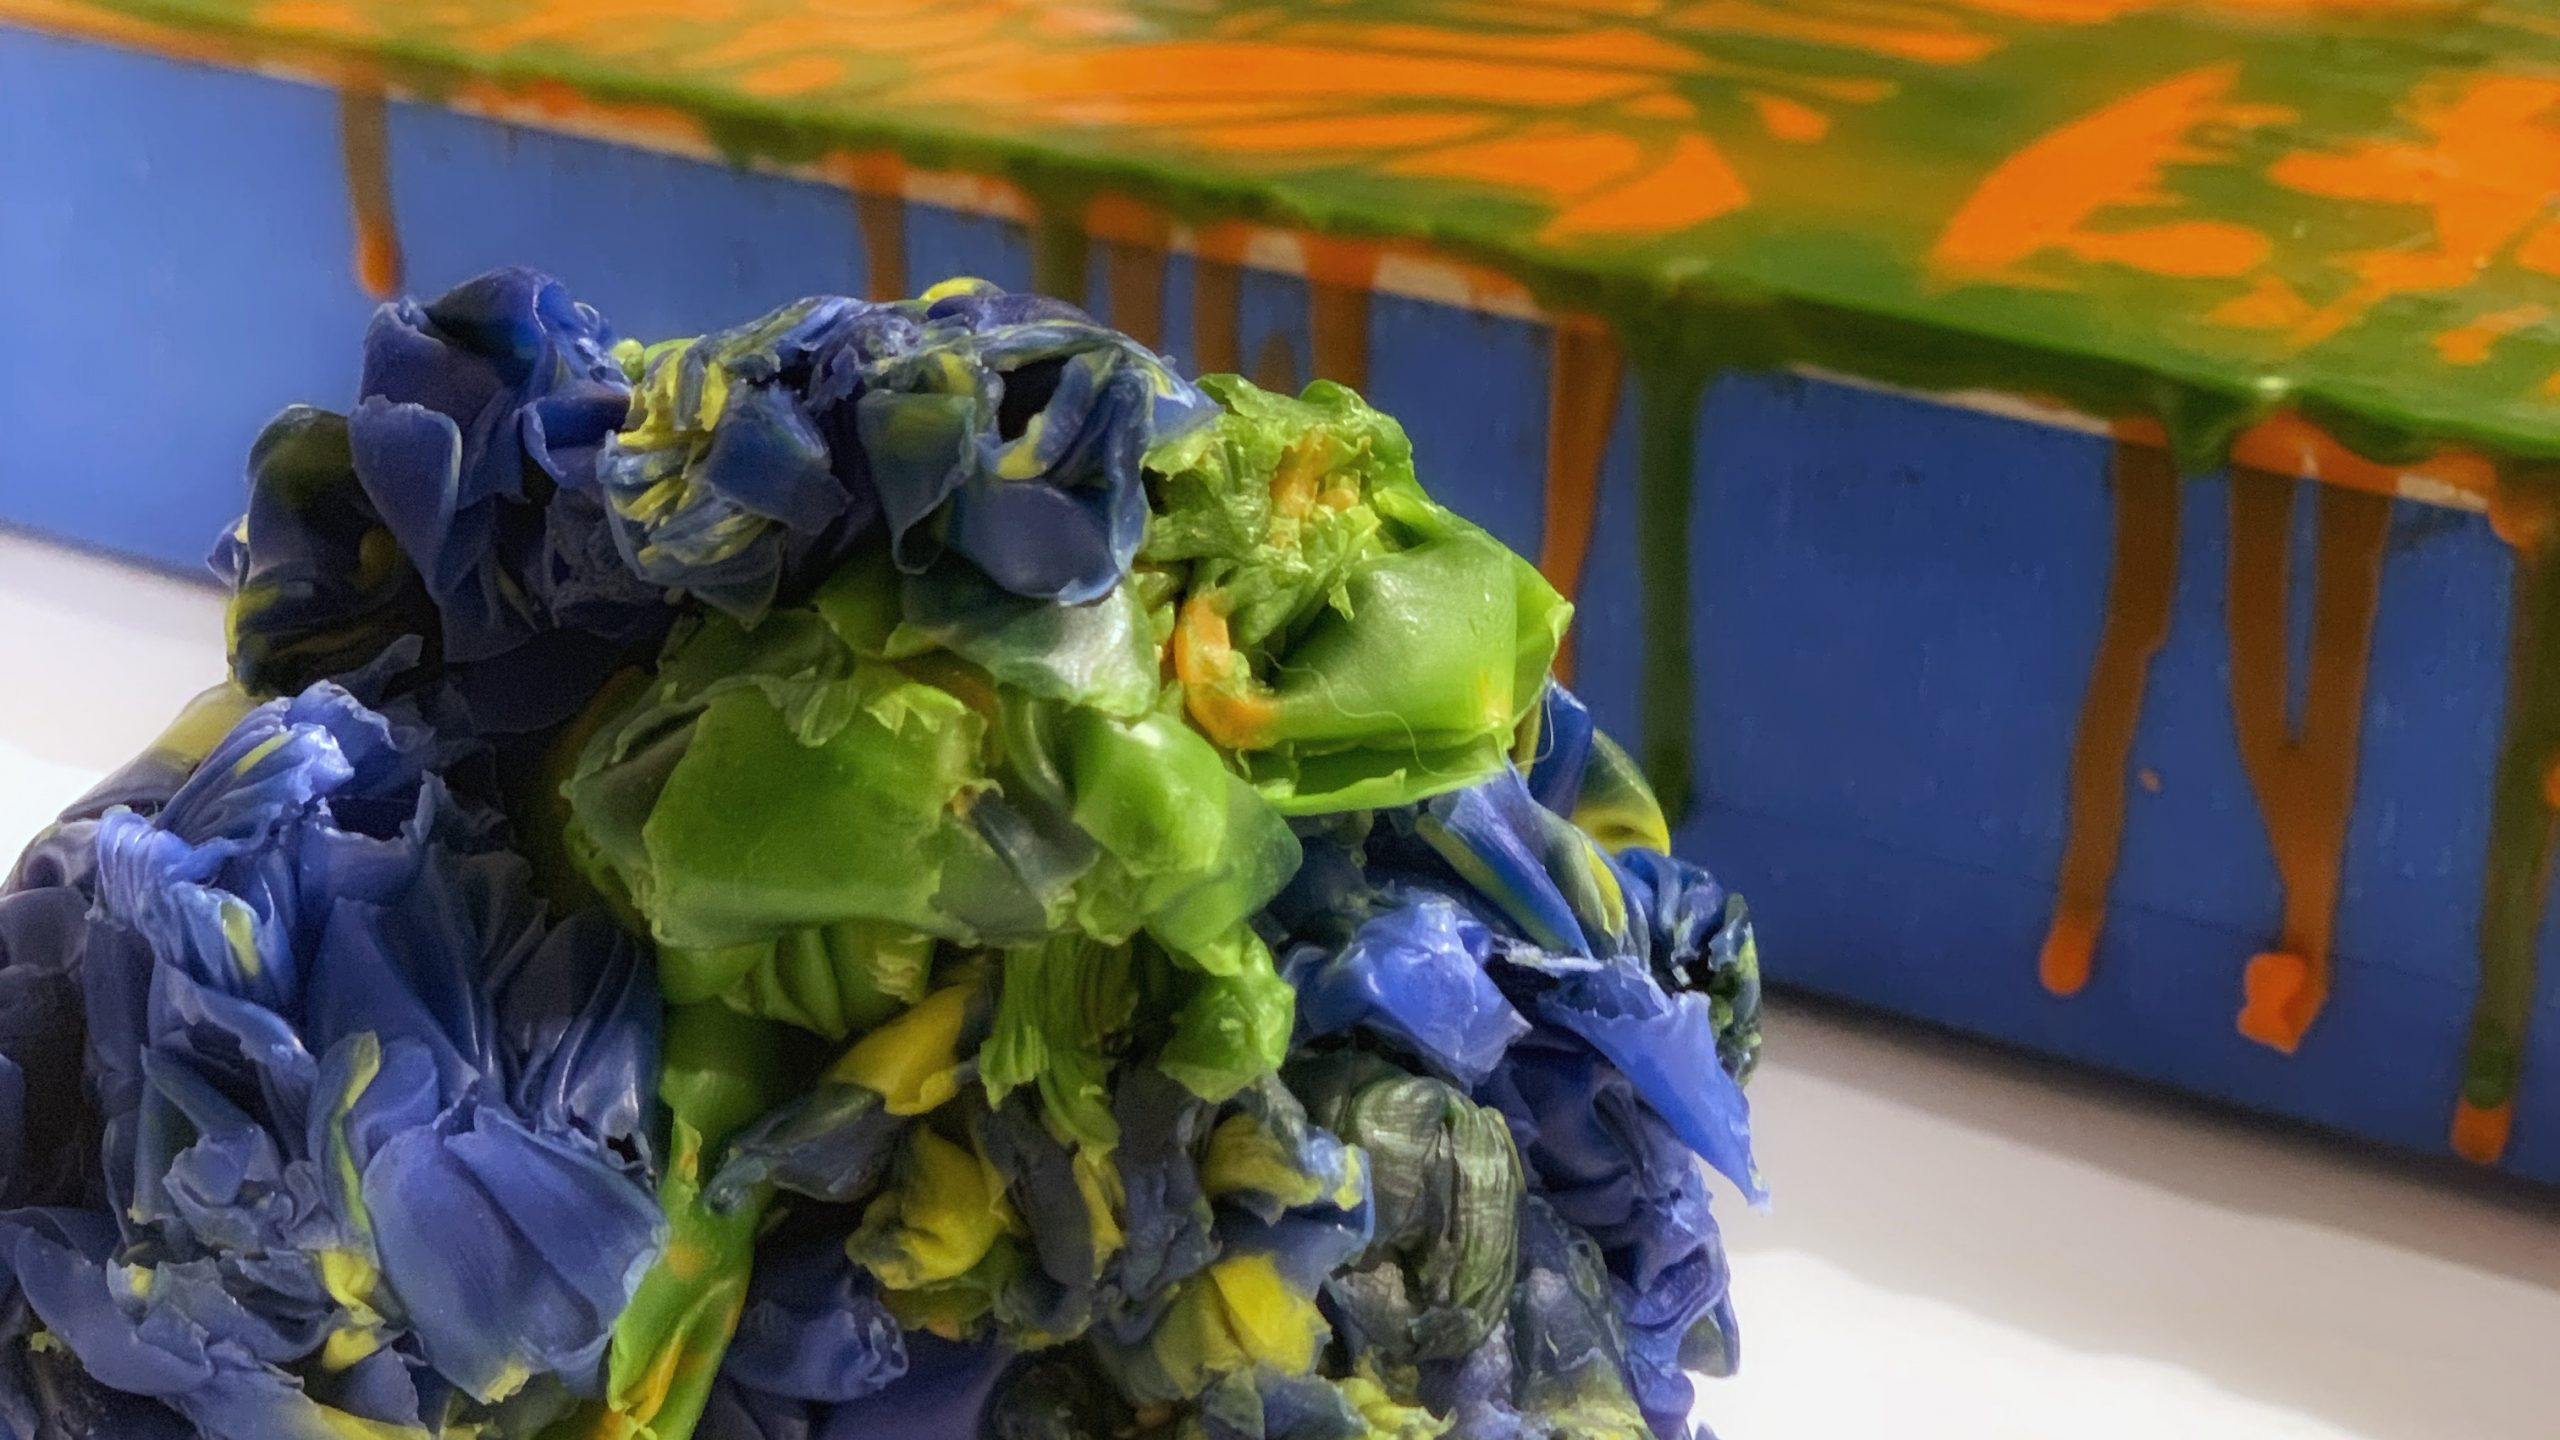 Close-up of a ball of wax scraping. There is an encaustic painting in the background that is laying flat on the same table as the wax ball. The colours in the ball are blue, green, and yellow. The colours in the painting are green and orange. The sides of the painting panel are tapped with blue painter's tape.